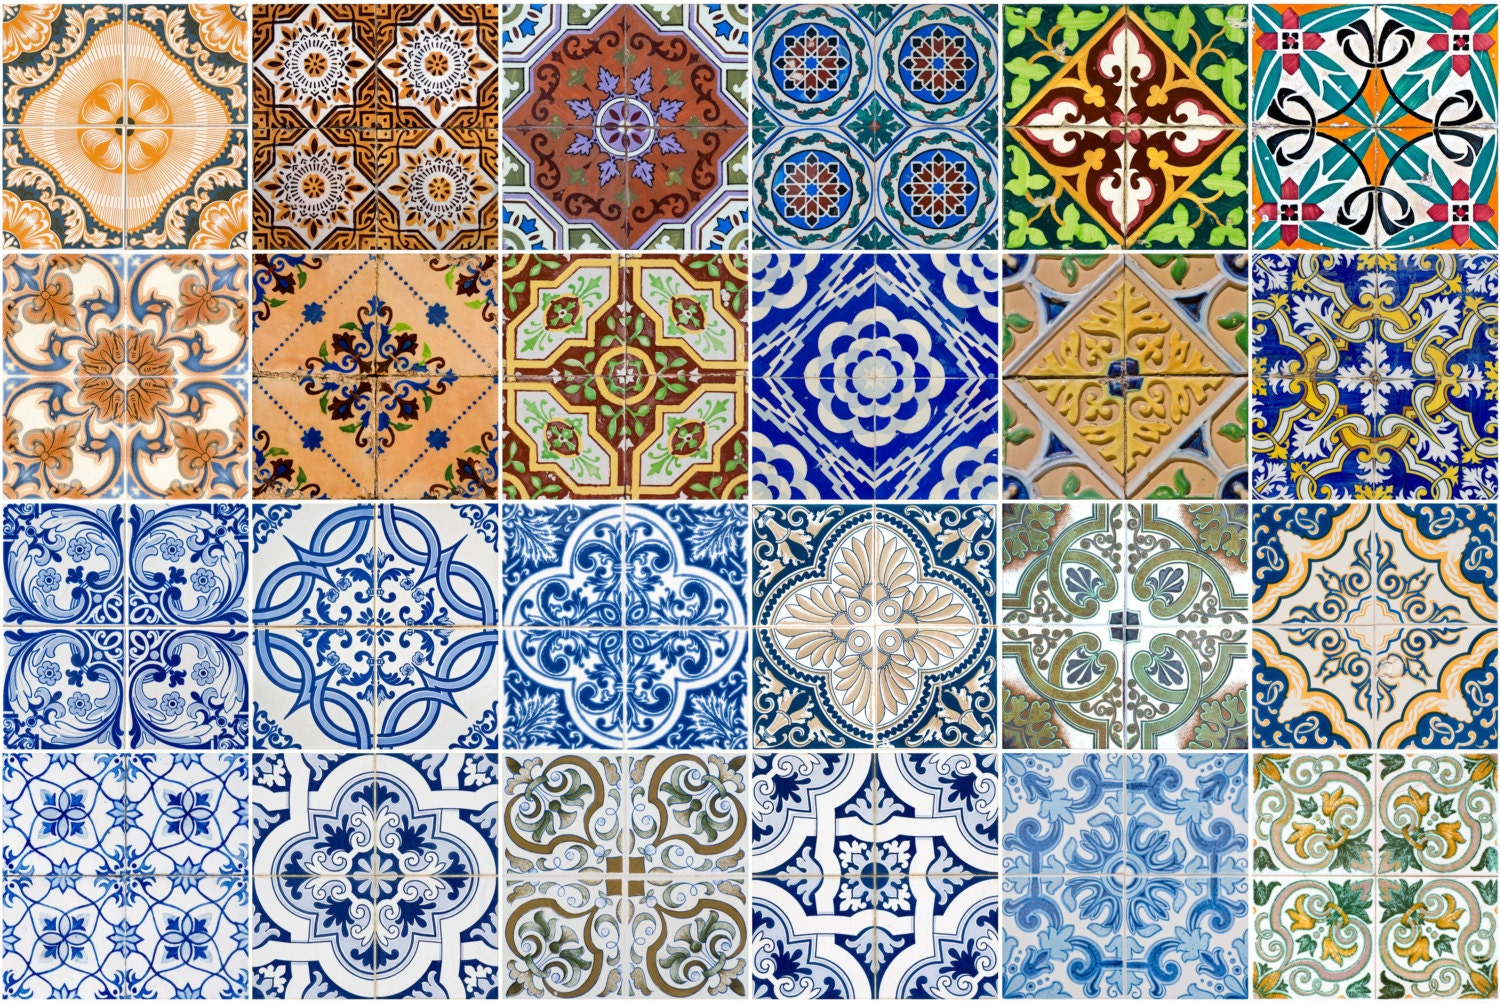 tile stickers wall decal spenish style adesivi per